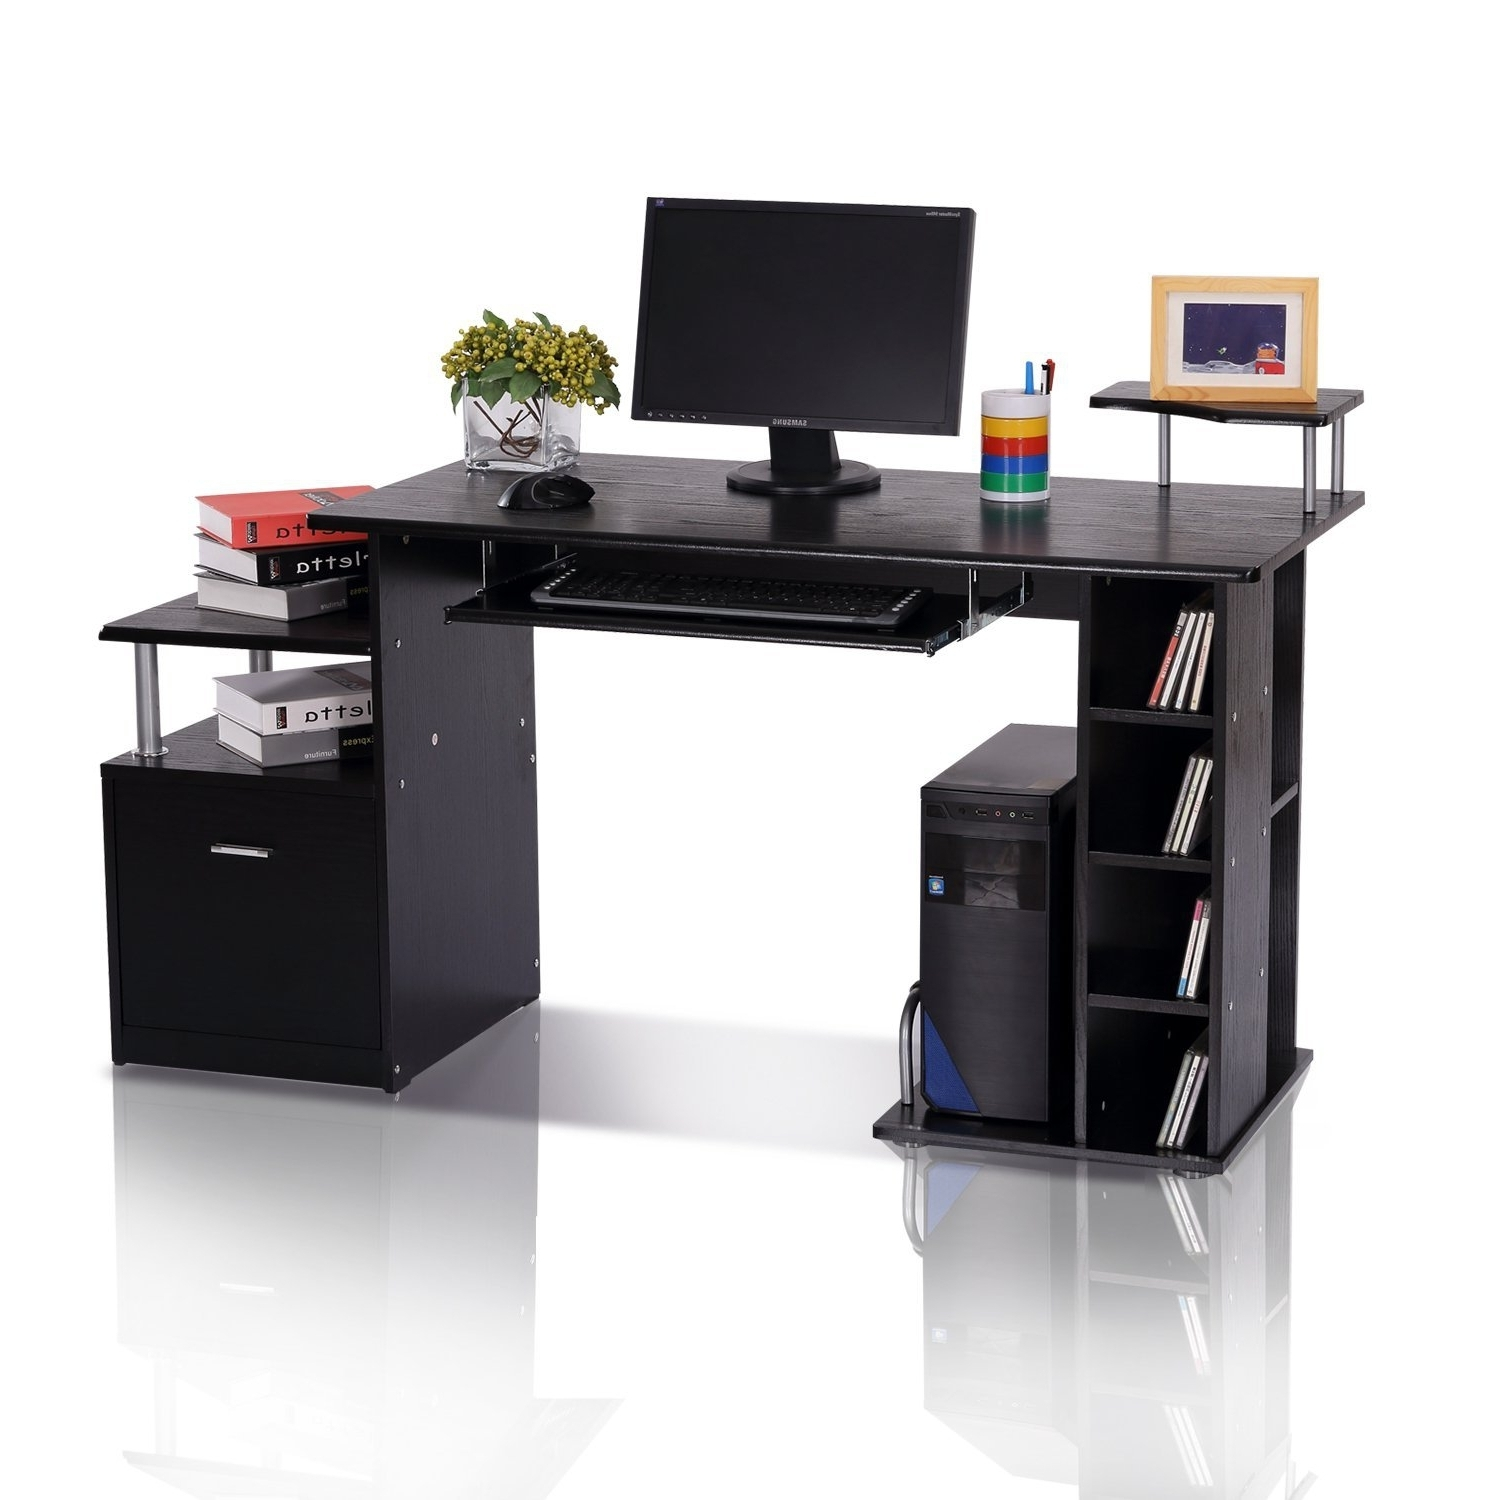 Computer Desks And Workstations Throughout Most Popular Computer Desks & Workstations: Home Office Furniture – Best Buy Canada (View 12 of 20)